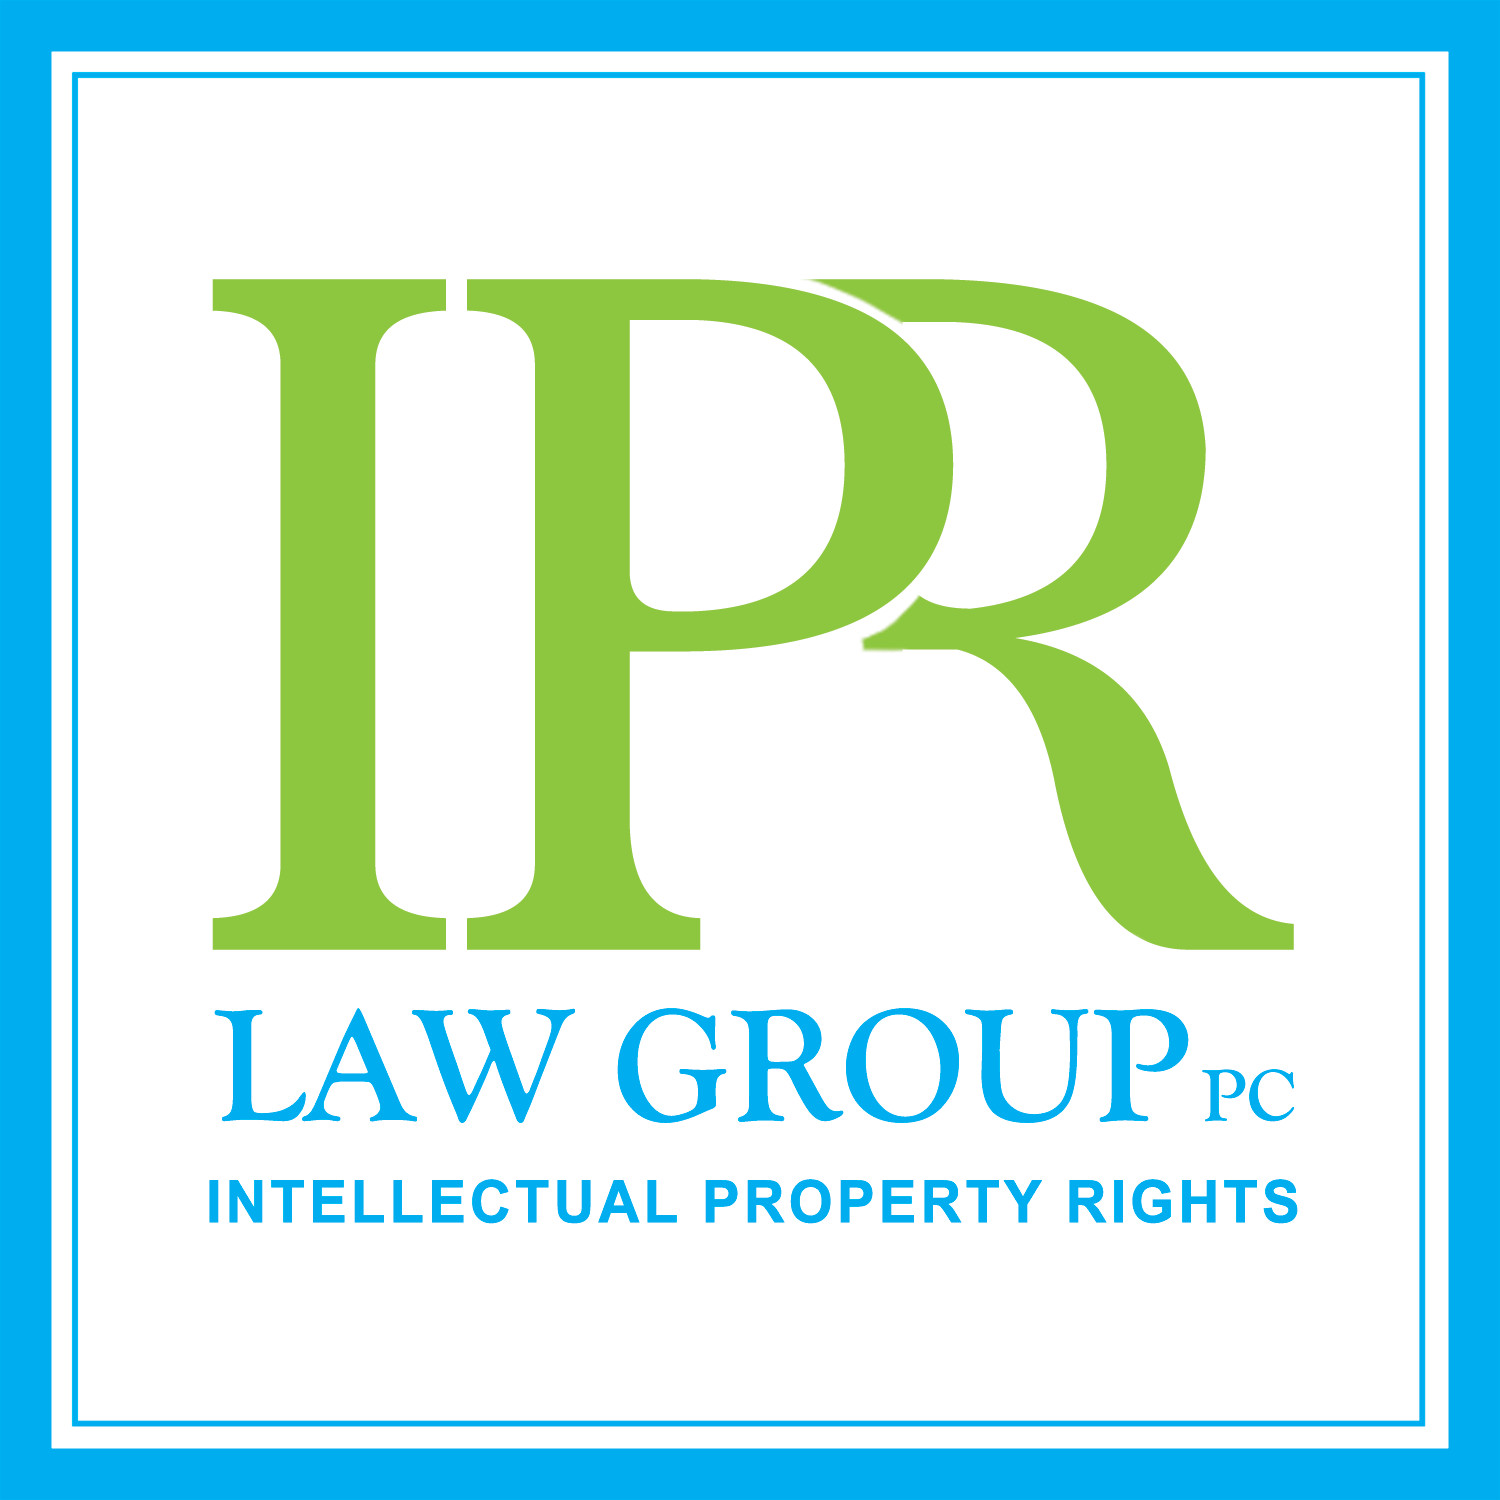 IPR Law Group PC | Intellectual Property Rights